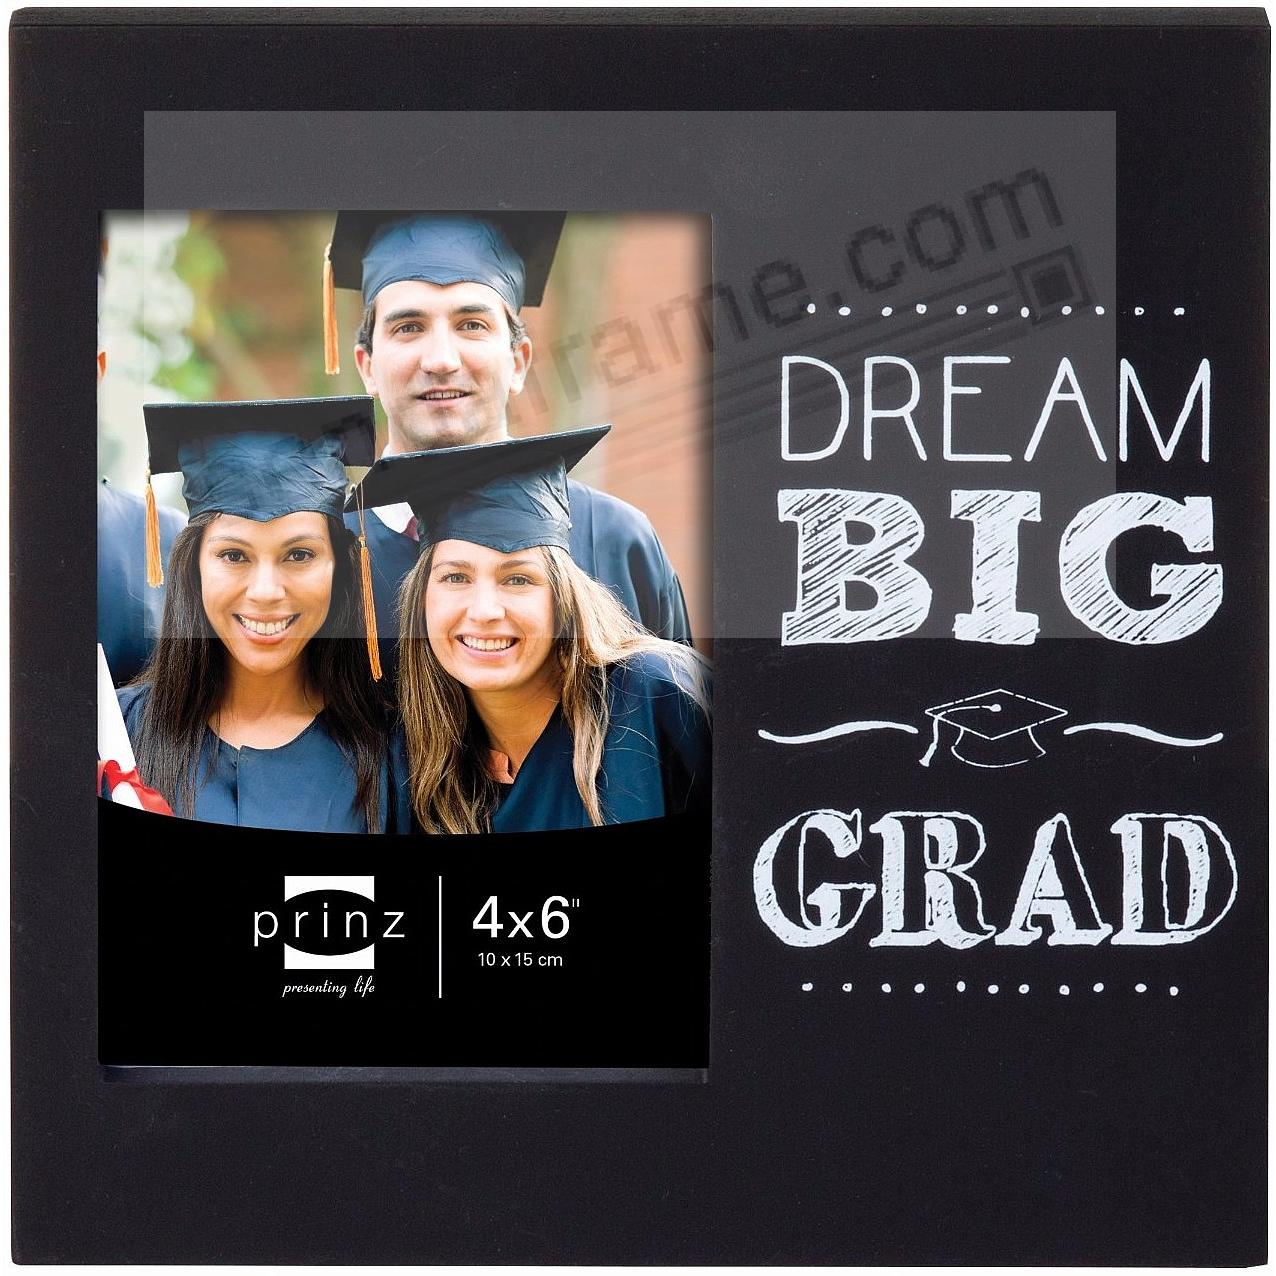 DREAM BIG GRAD Black CAP frame by Prinz®